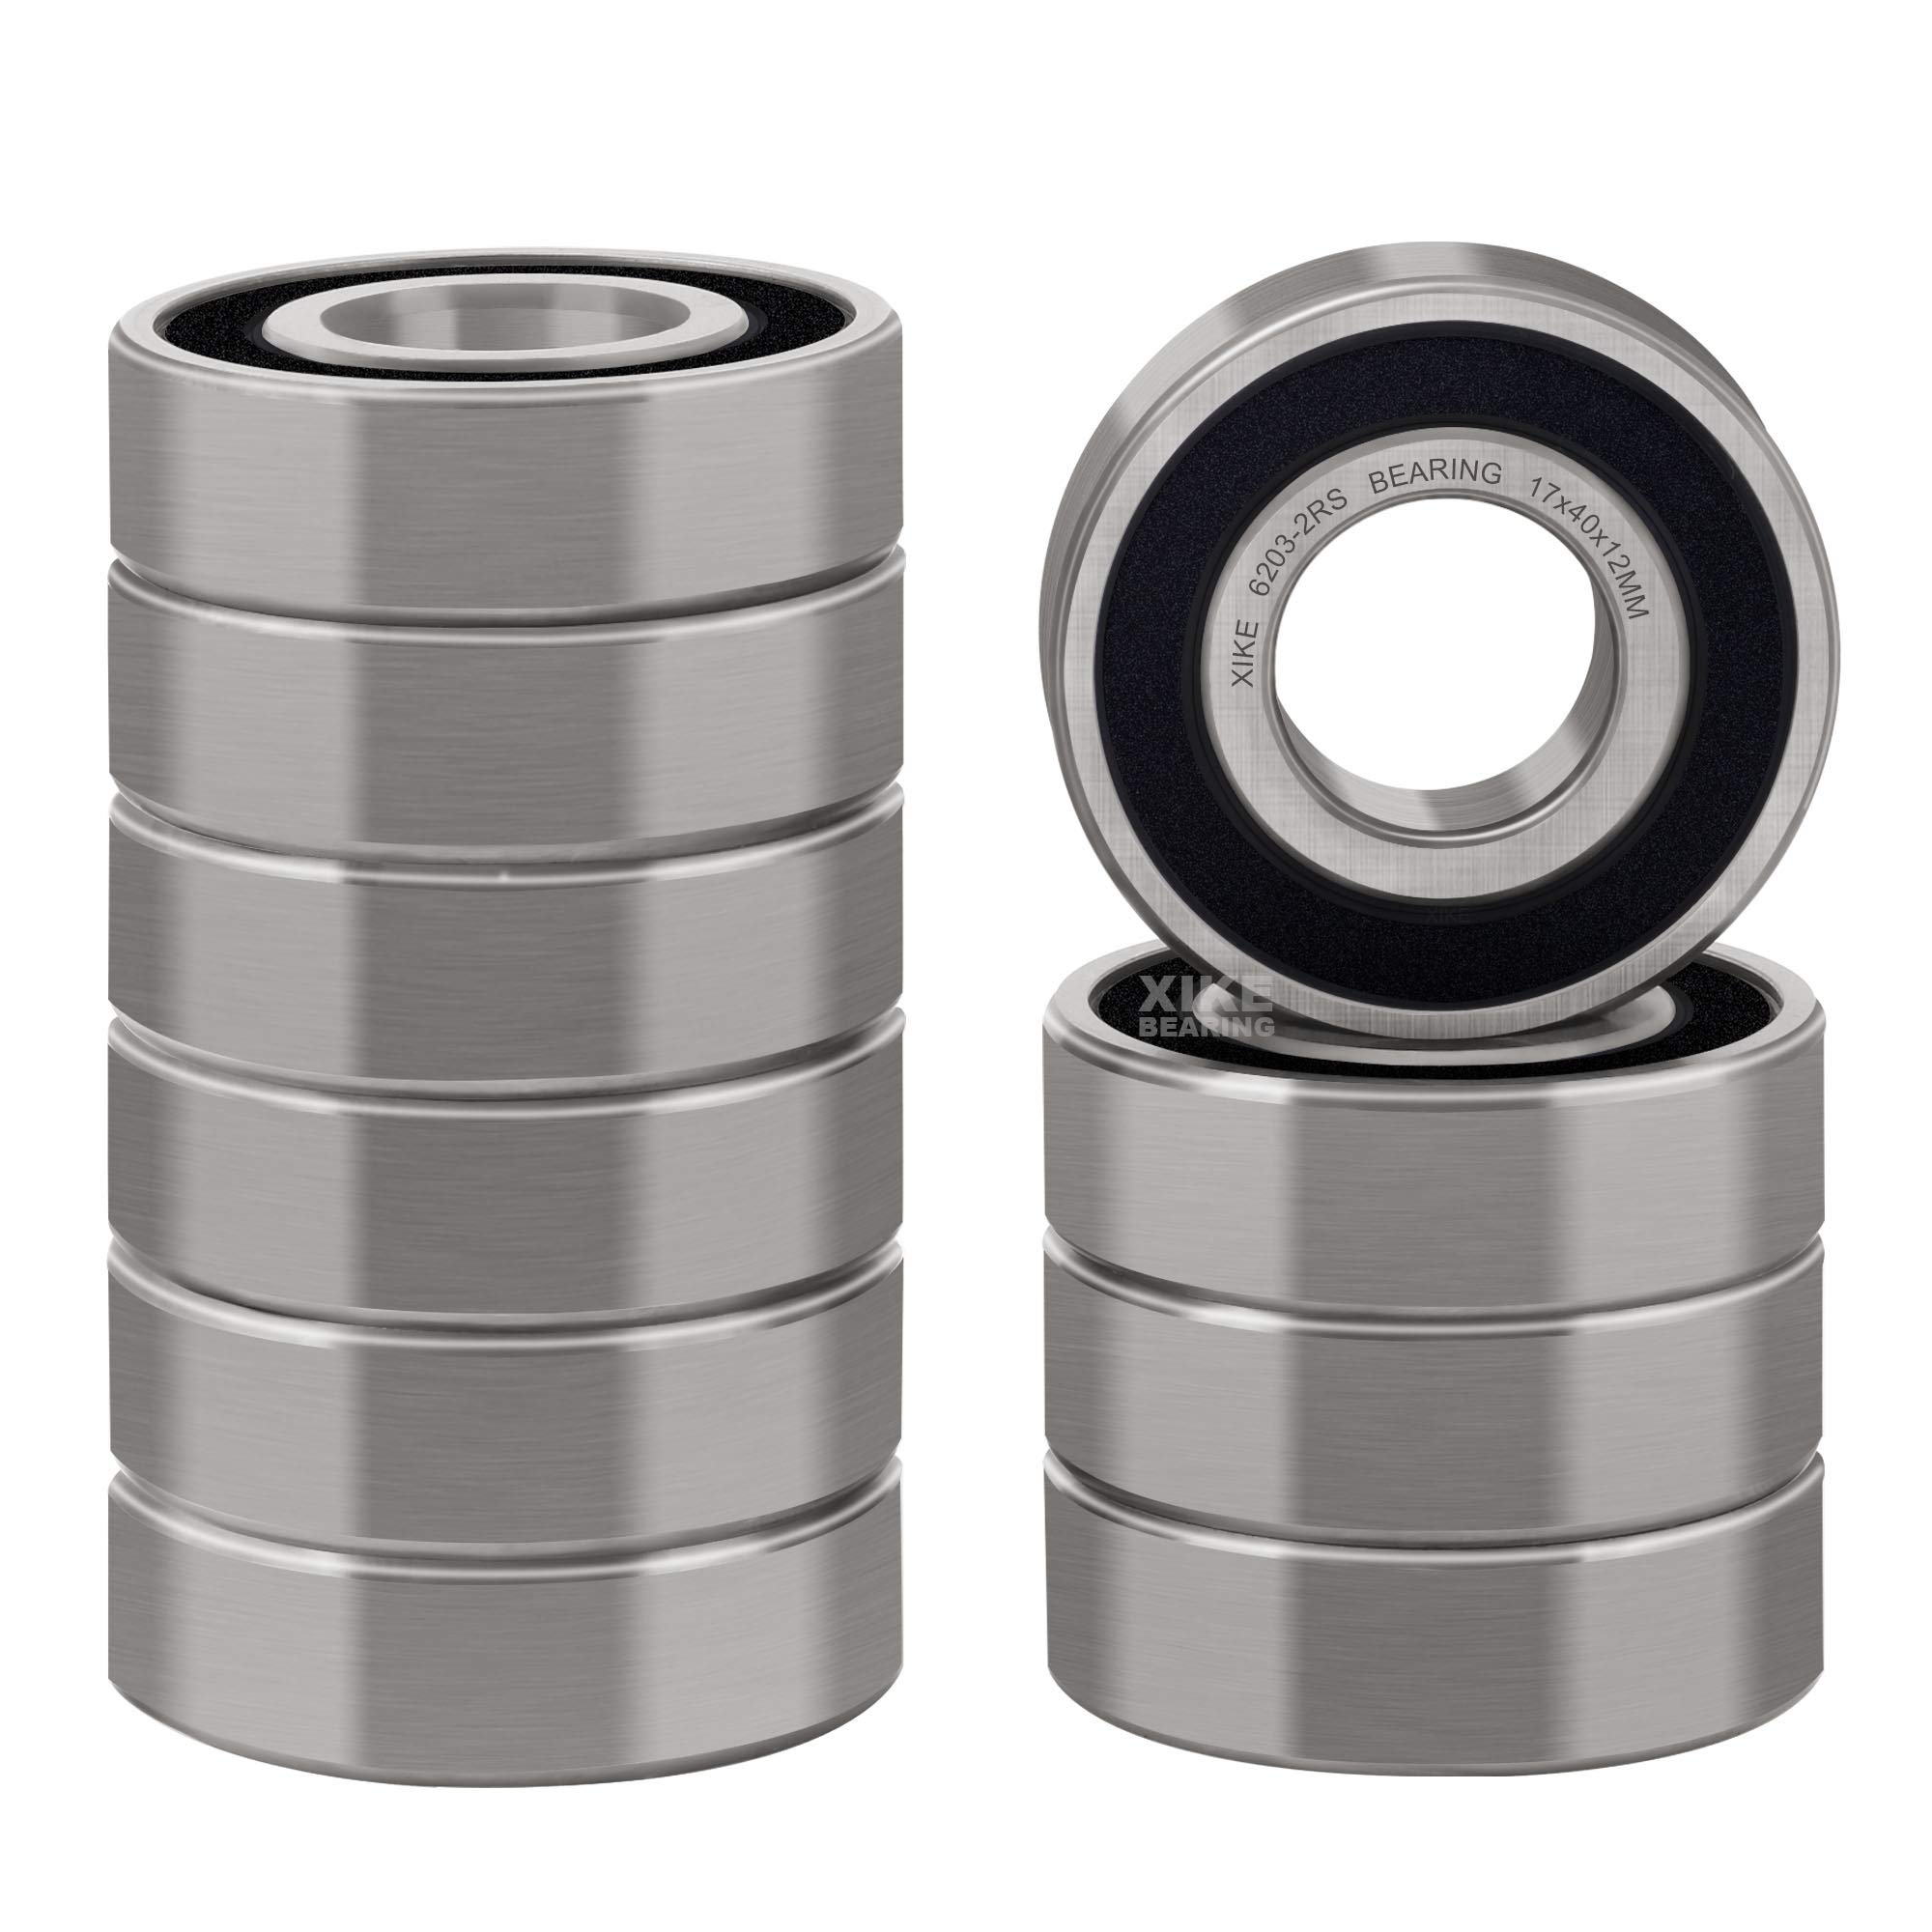 Deep Groove Ball Bearings. Double Seal and Pre-Lubricated Rotate Quiet High Speed and Durable XiKe 10 Pack 6001-2RS Precision Bearings 12x28x8mm